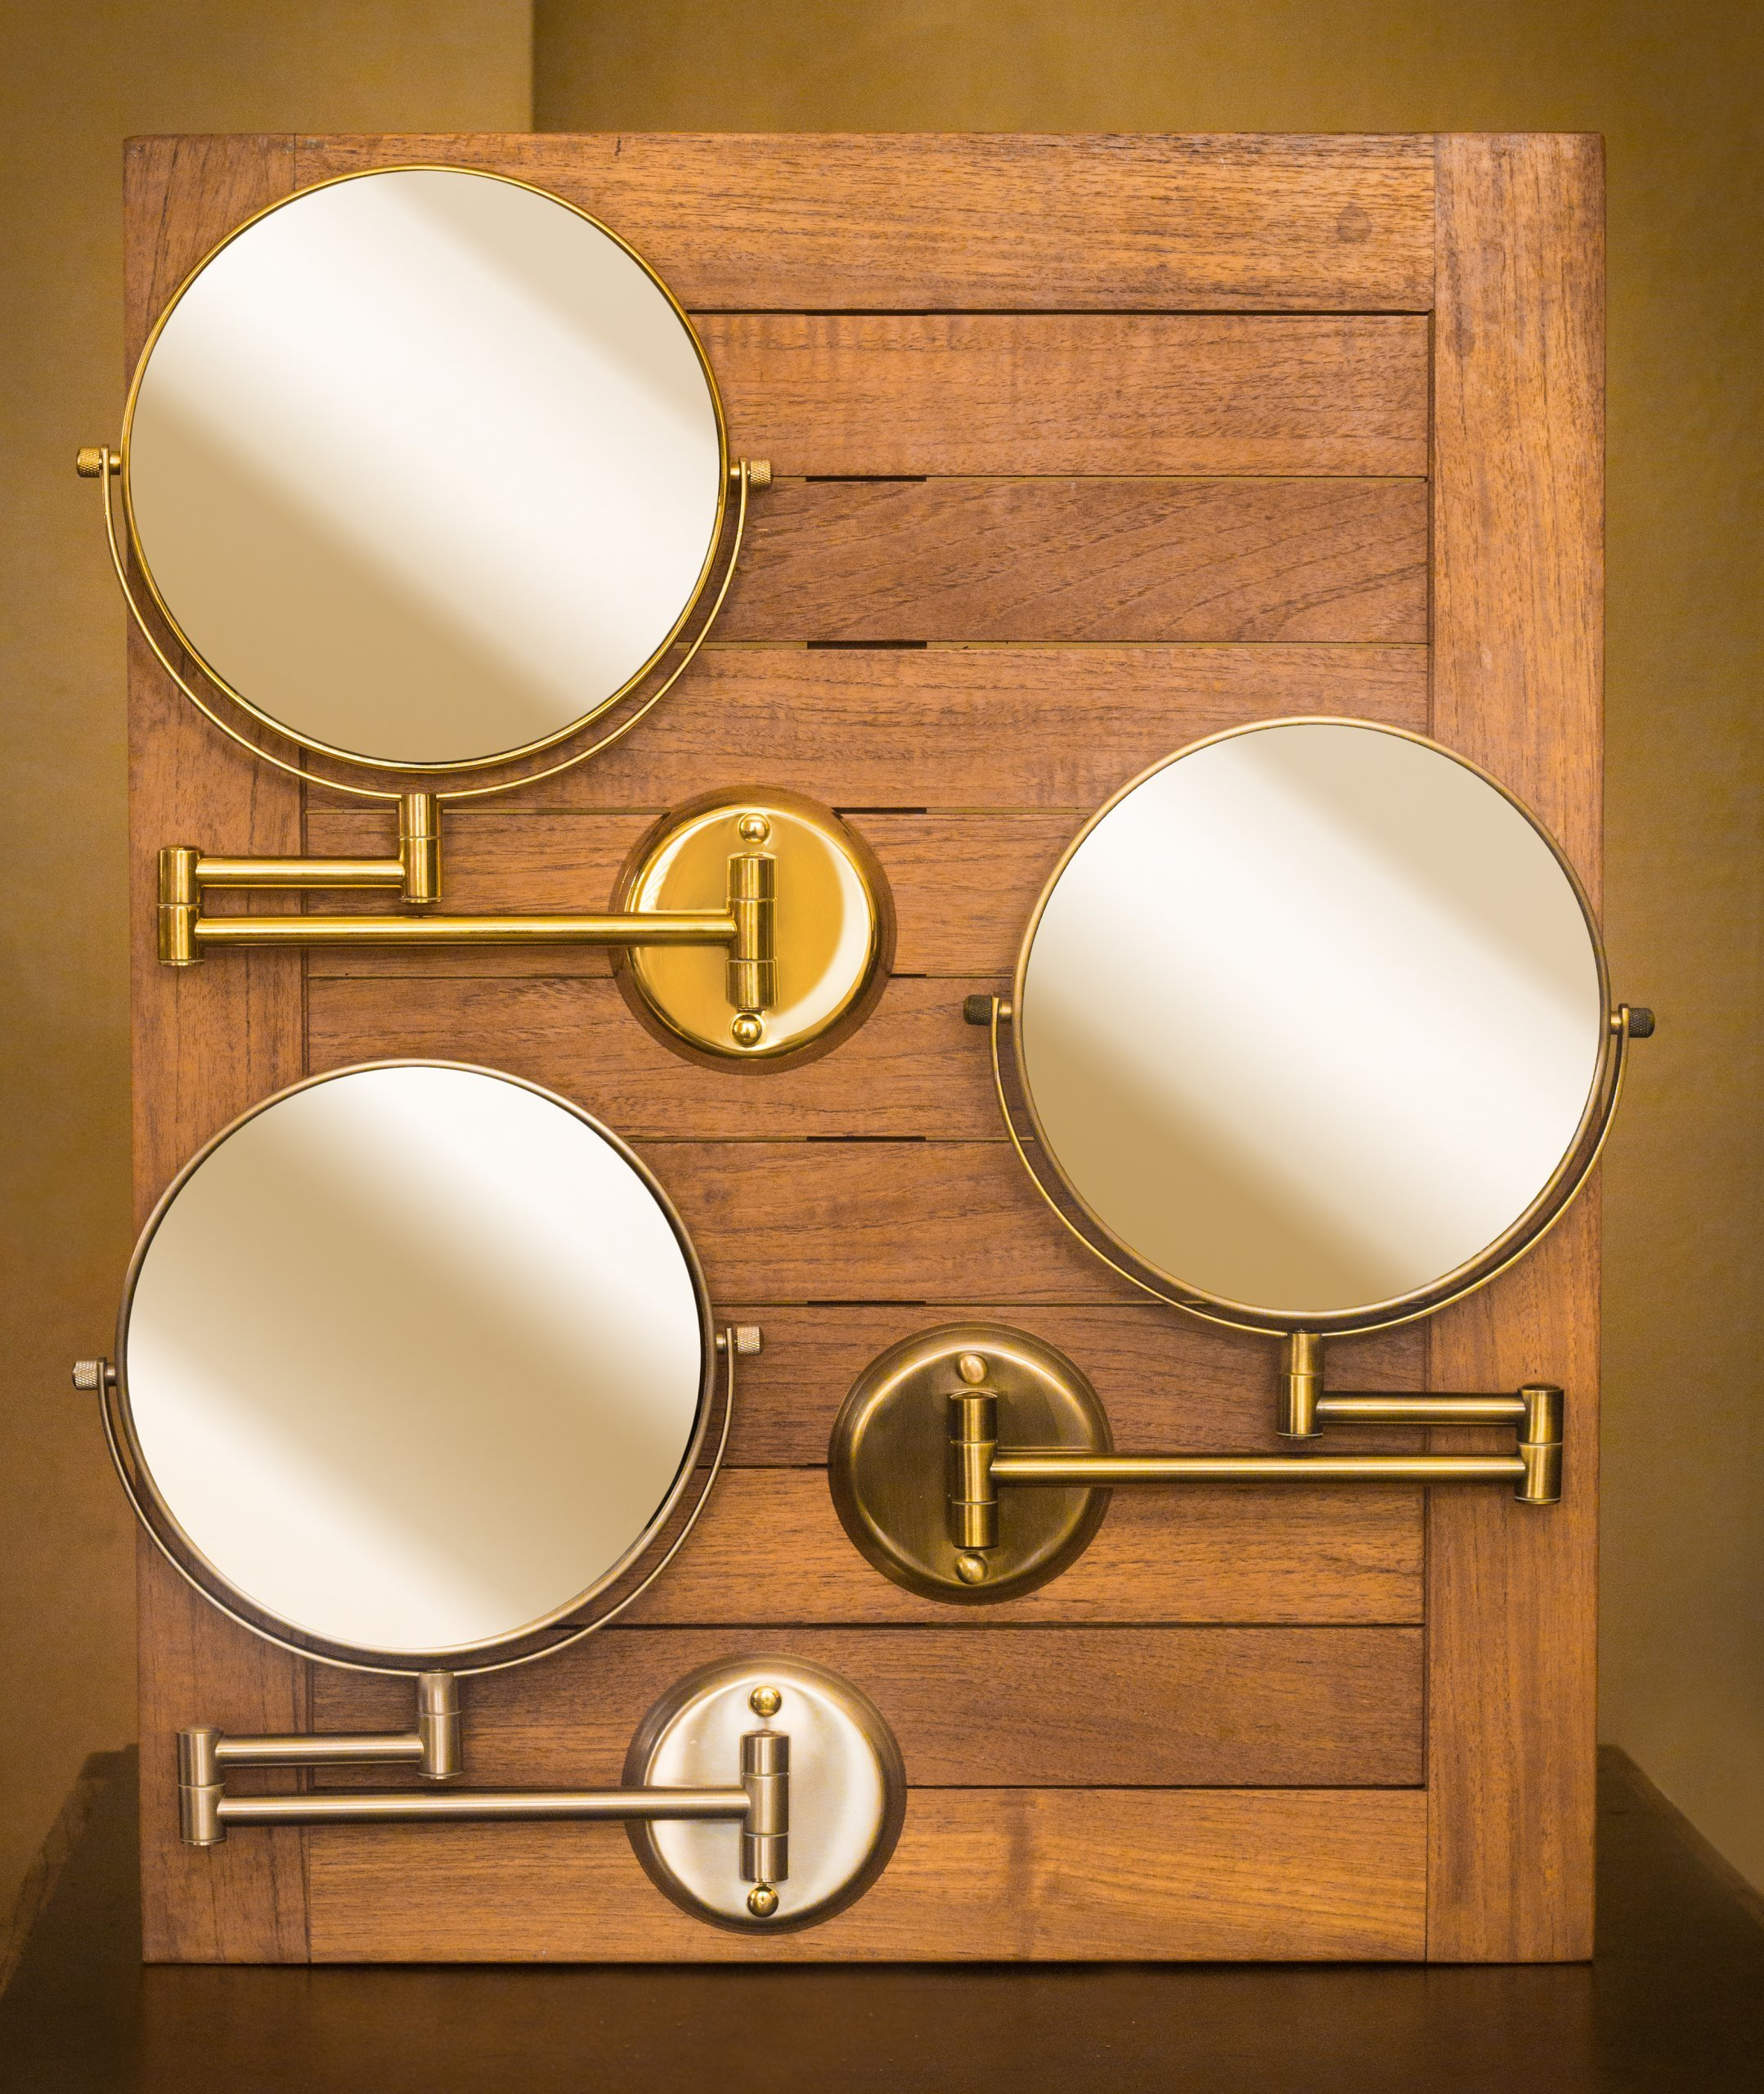 Hotel Quality 8'' Magnification Wall Mount Swing Arm Mirror. Two-Sided Regular & 7X Magnification. Brushed Brass Finish. by Trish